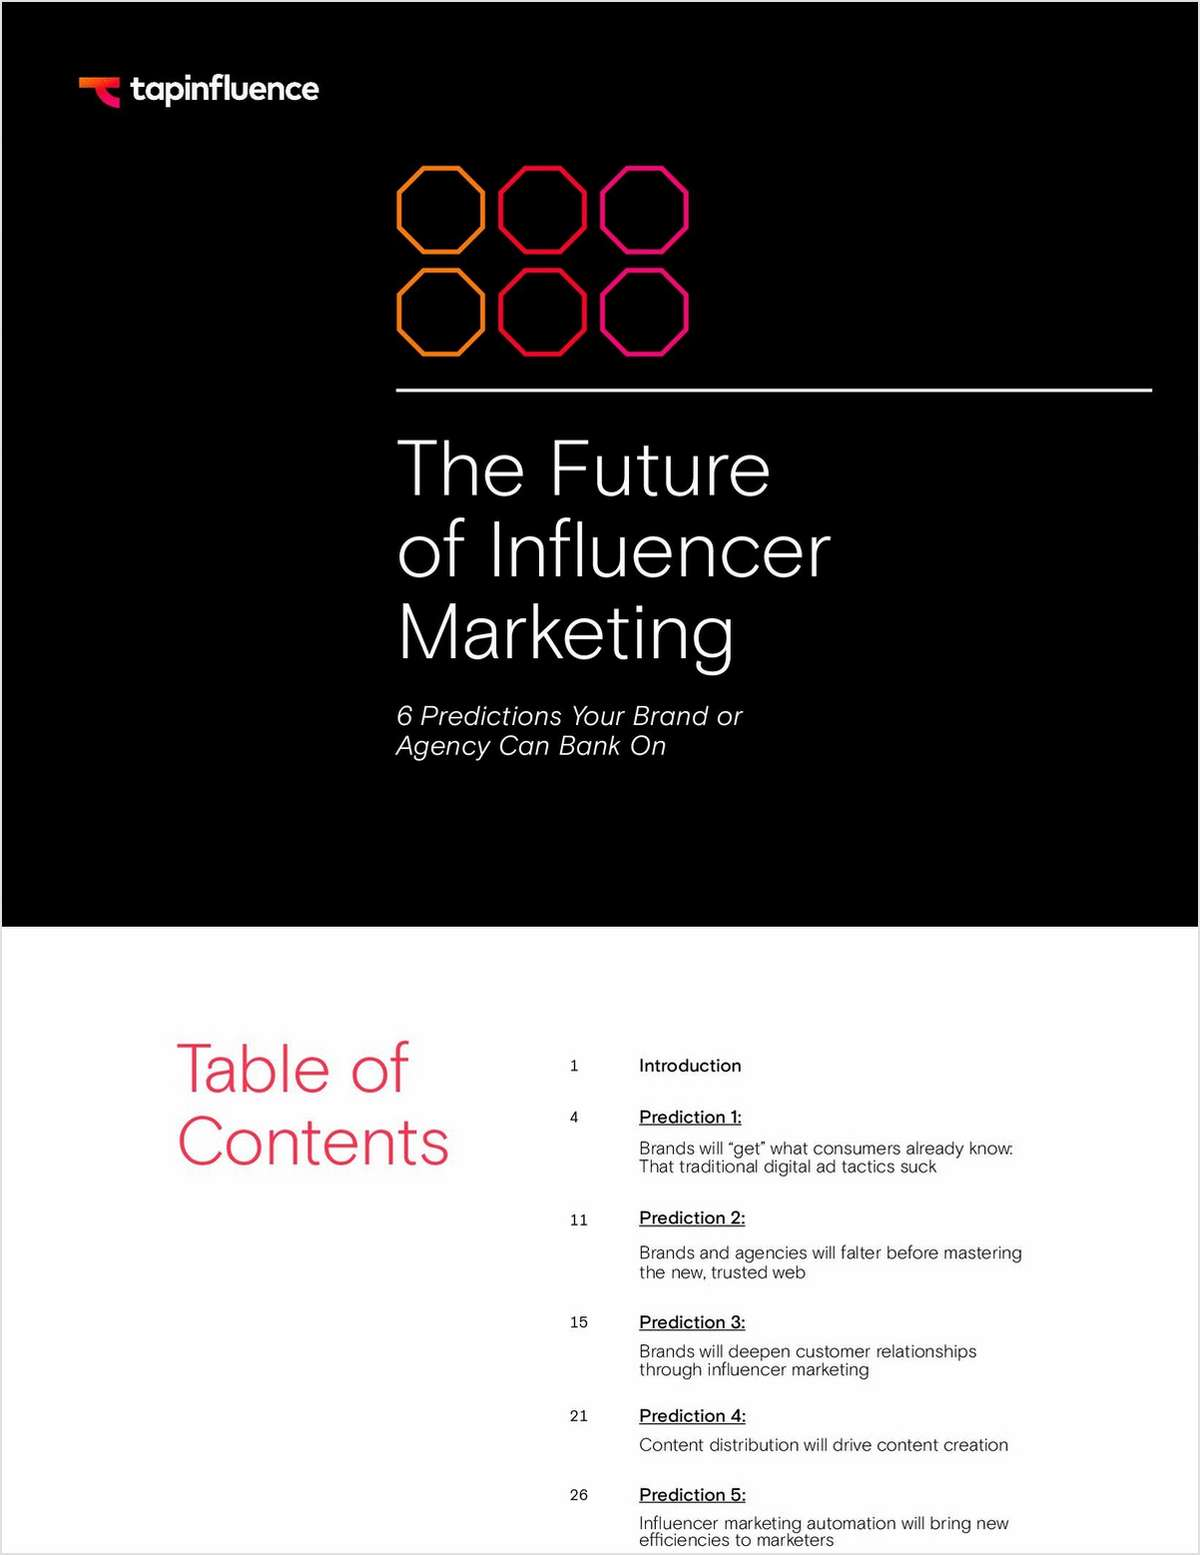 The Future of Influencer Marketing: 6 Predictions Your Brand or Agency Can Bank On